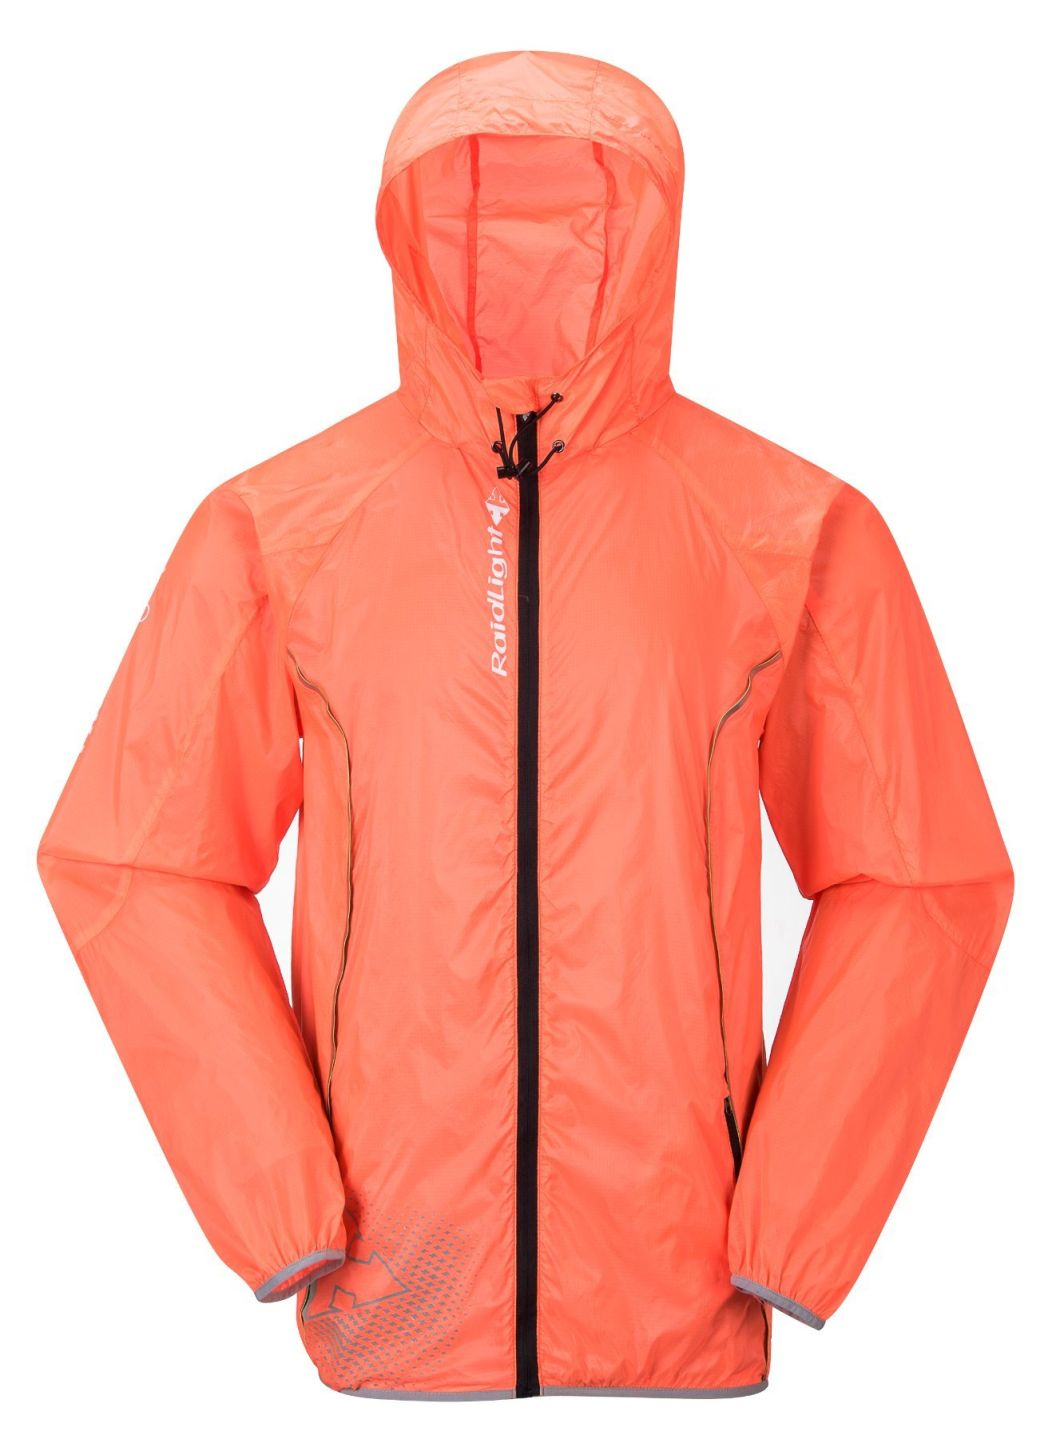 Ultra Light 210t Orange PU Coating Raincoat